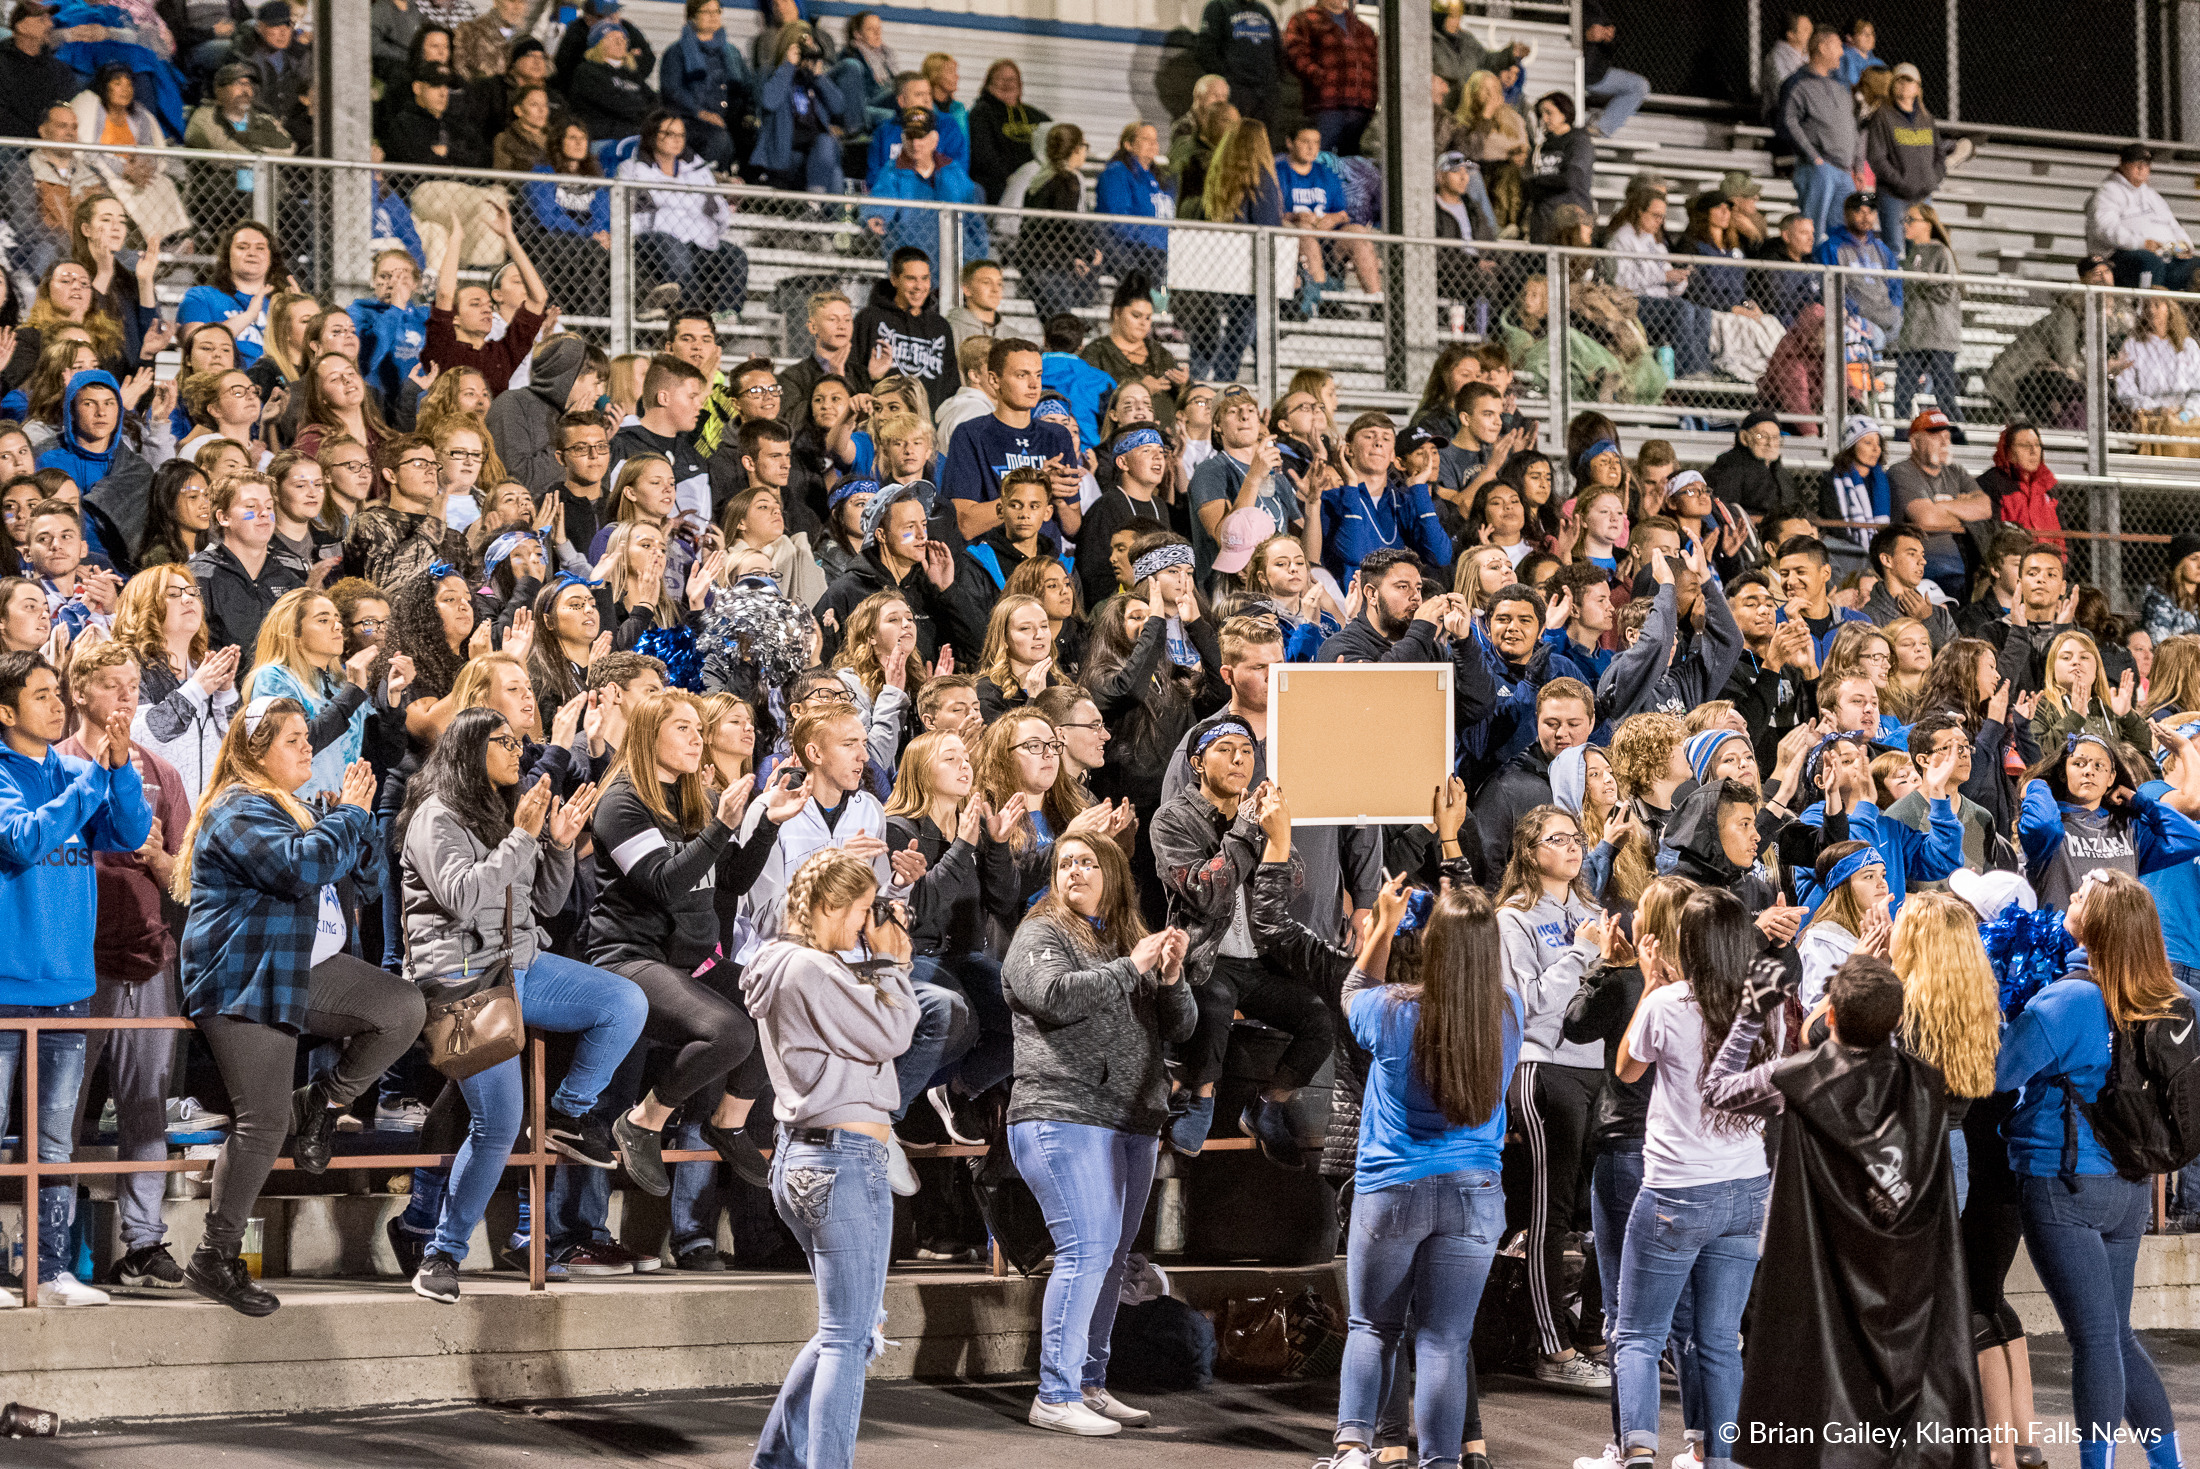 The Mazama Student Section came out in force to cheer on the Vikings at home. ( Brian Gaile)